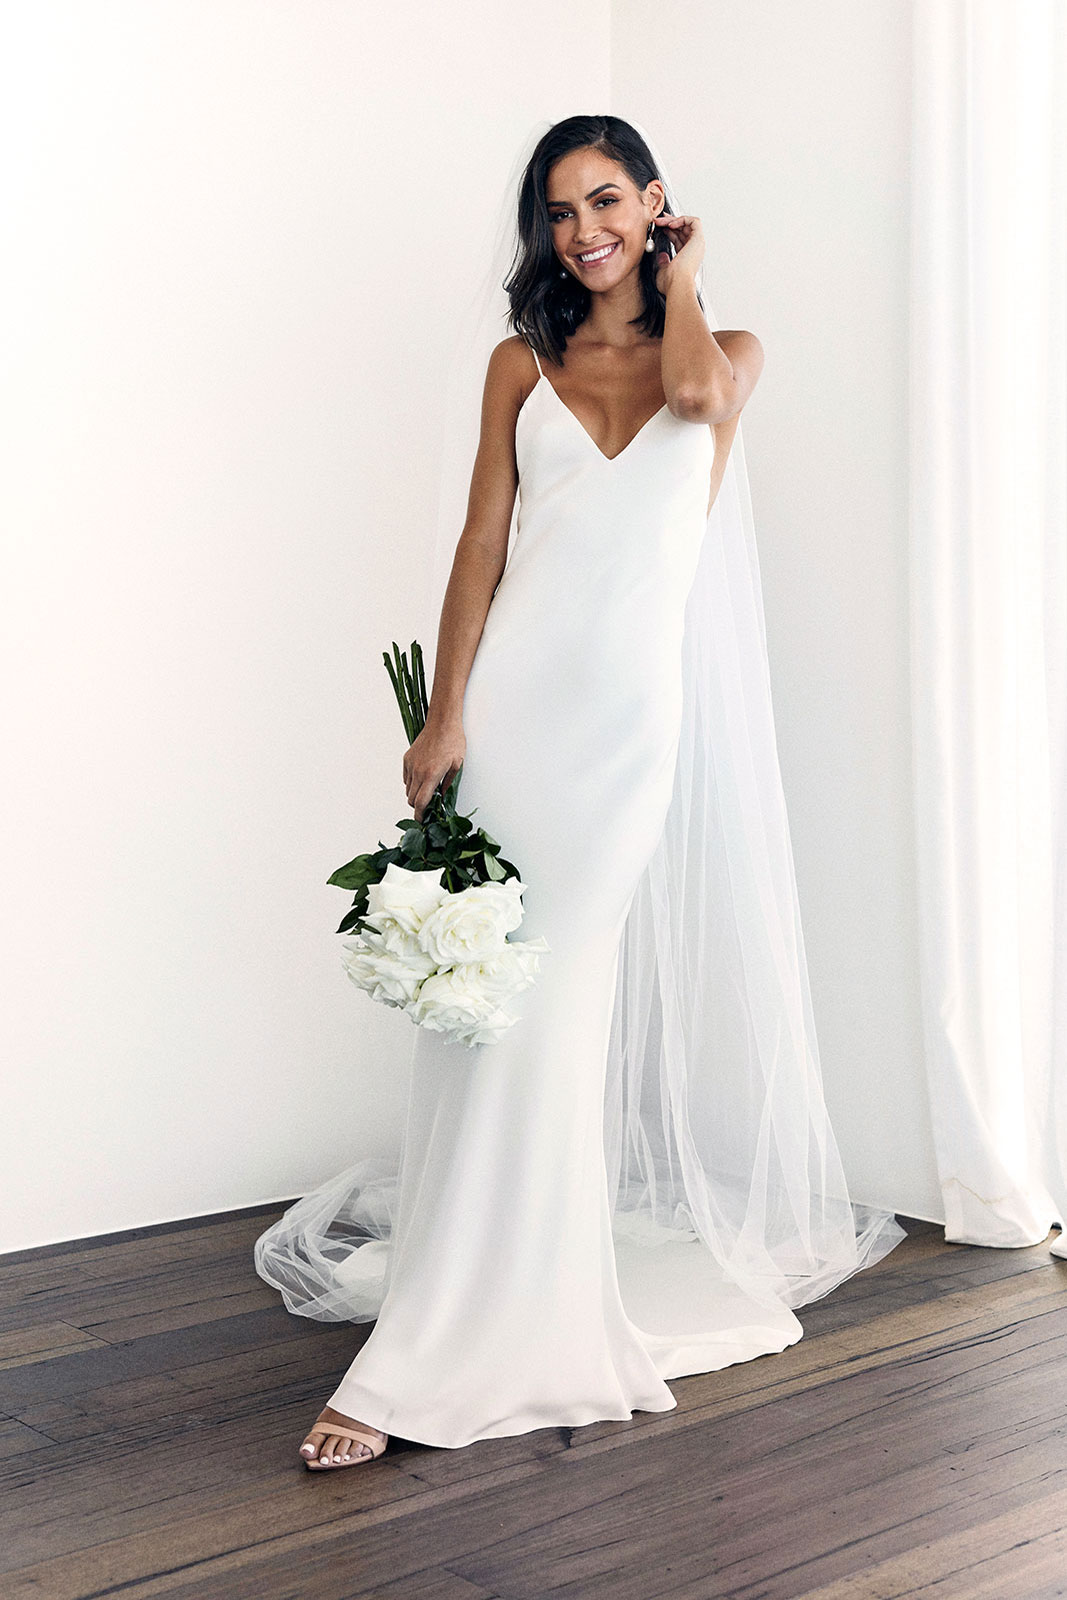 GRACE LOVES LACE Summer gown | Bridal Dresses under $2,000 | LOVE FIND CO. Bridal Dress Directory